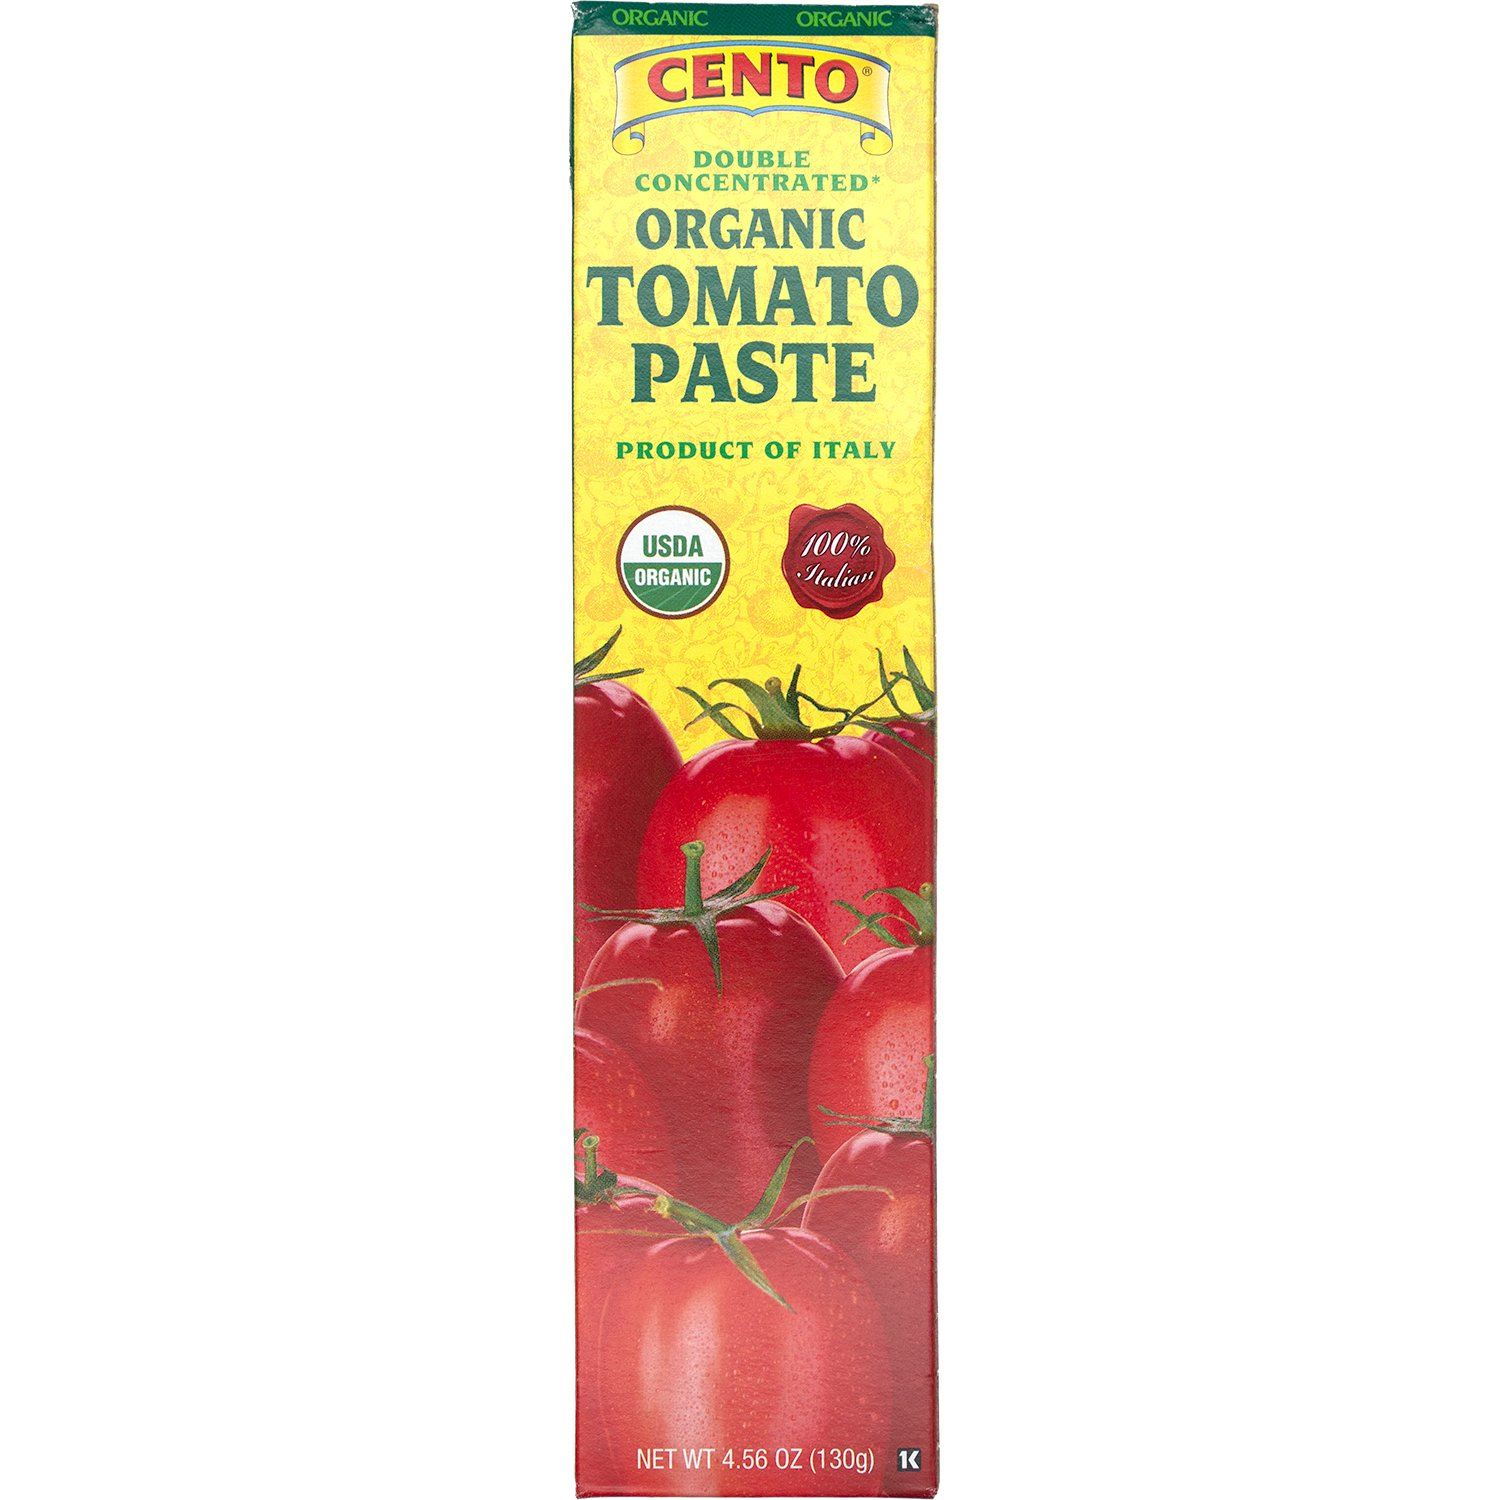 Cento Double Concentrated Tomato Paste in a Tube Cento Organic 4.56 Ounce